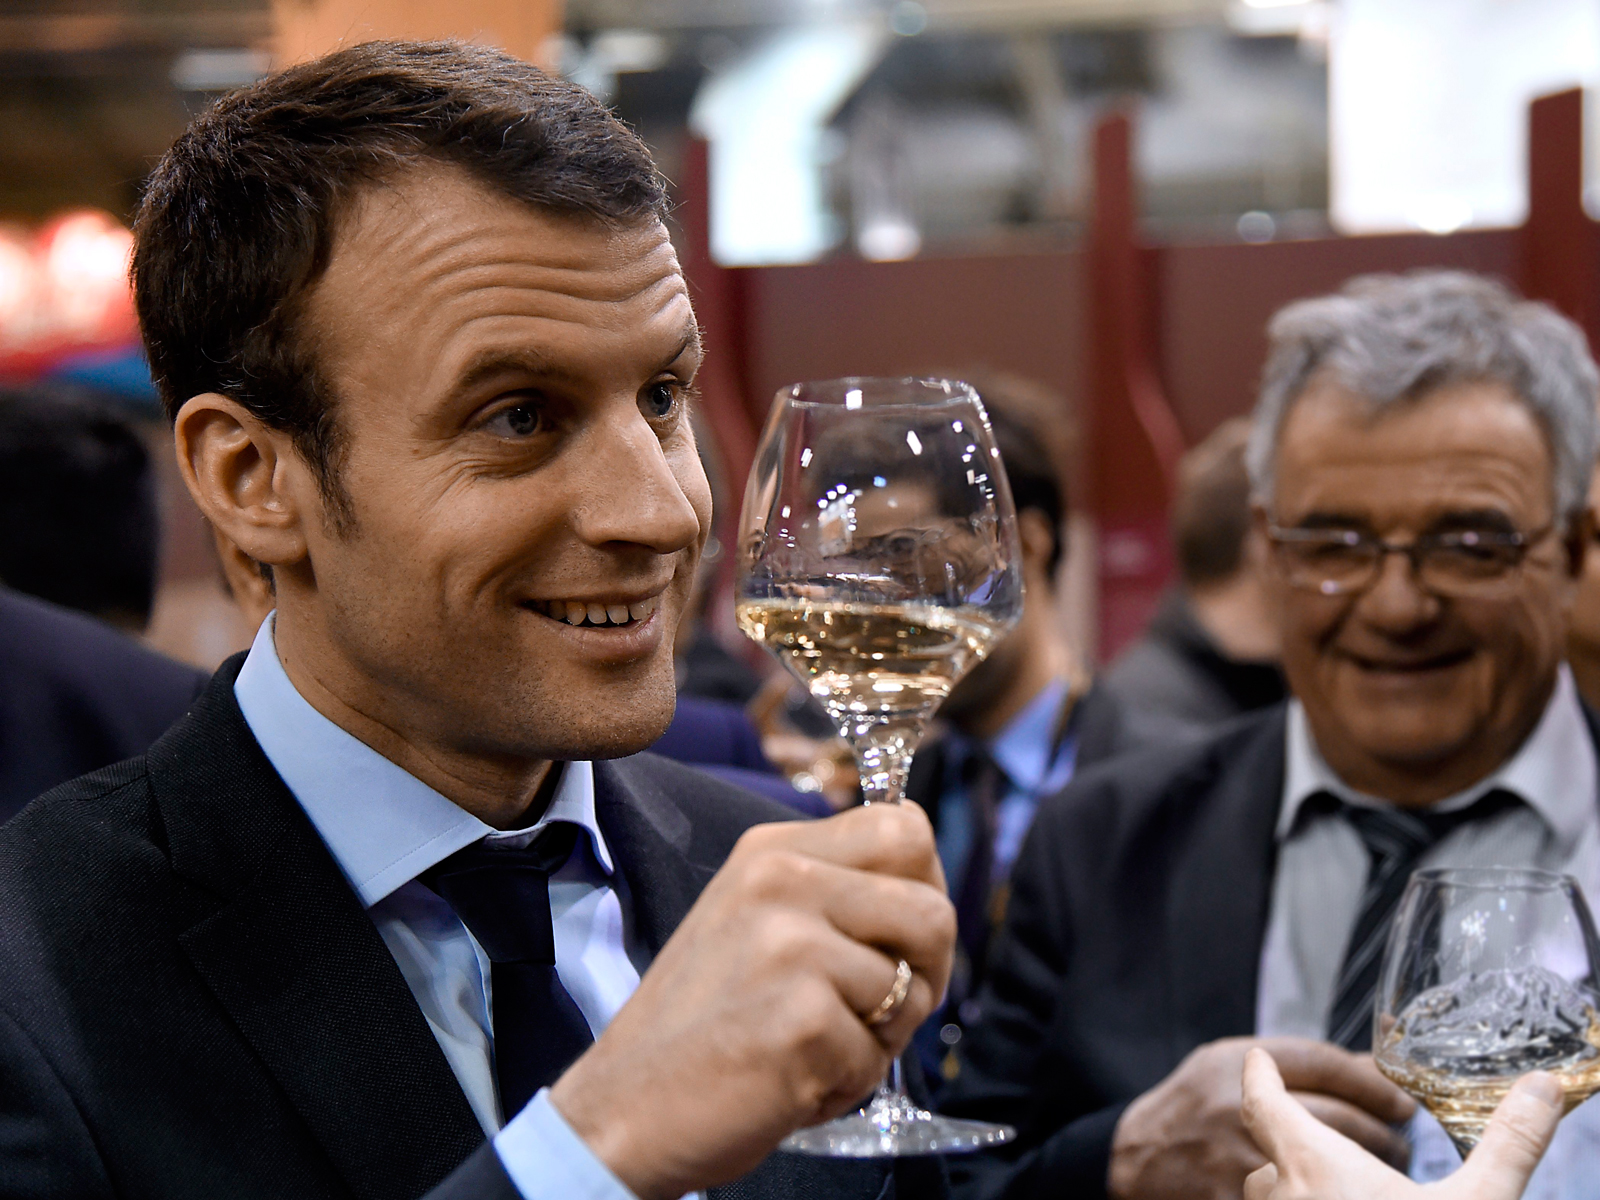 emmanuel-macron-wine-cellar-FT-BLOG0918.jpg